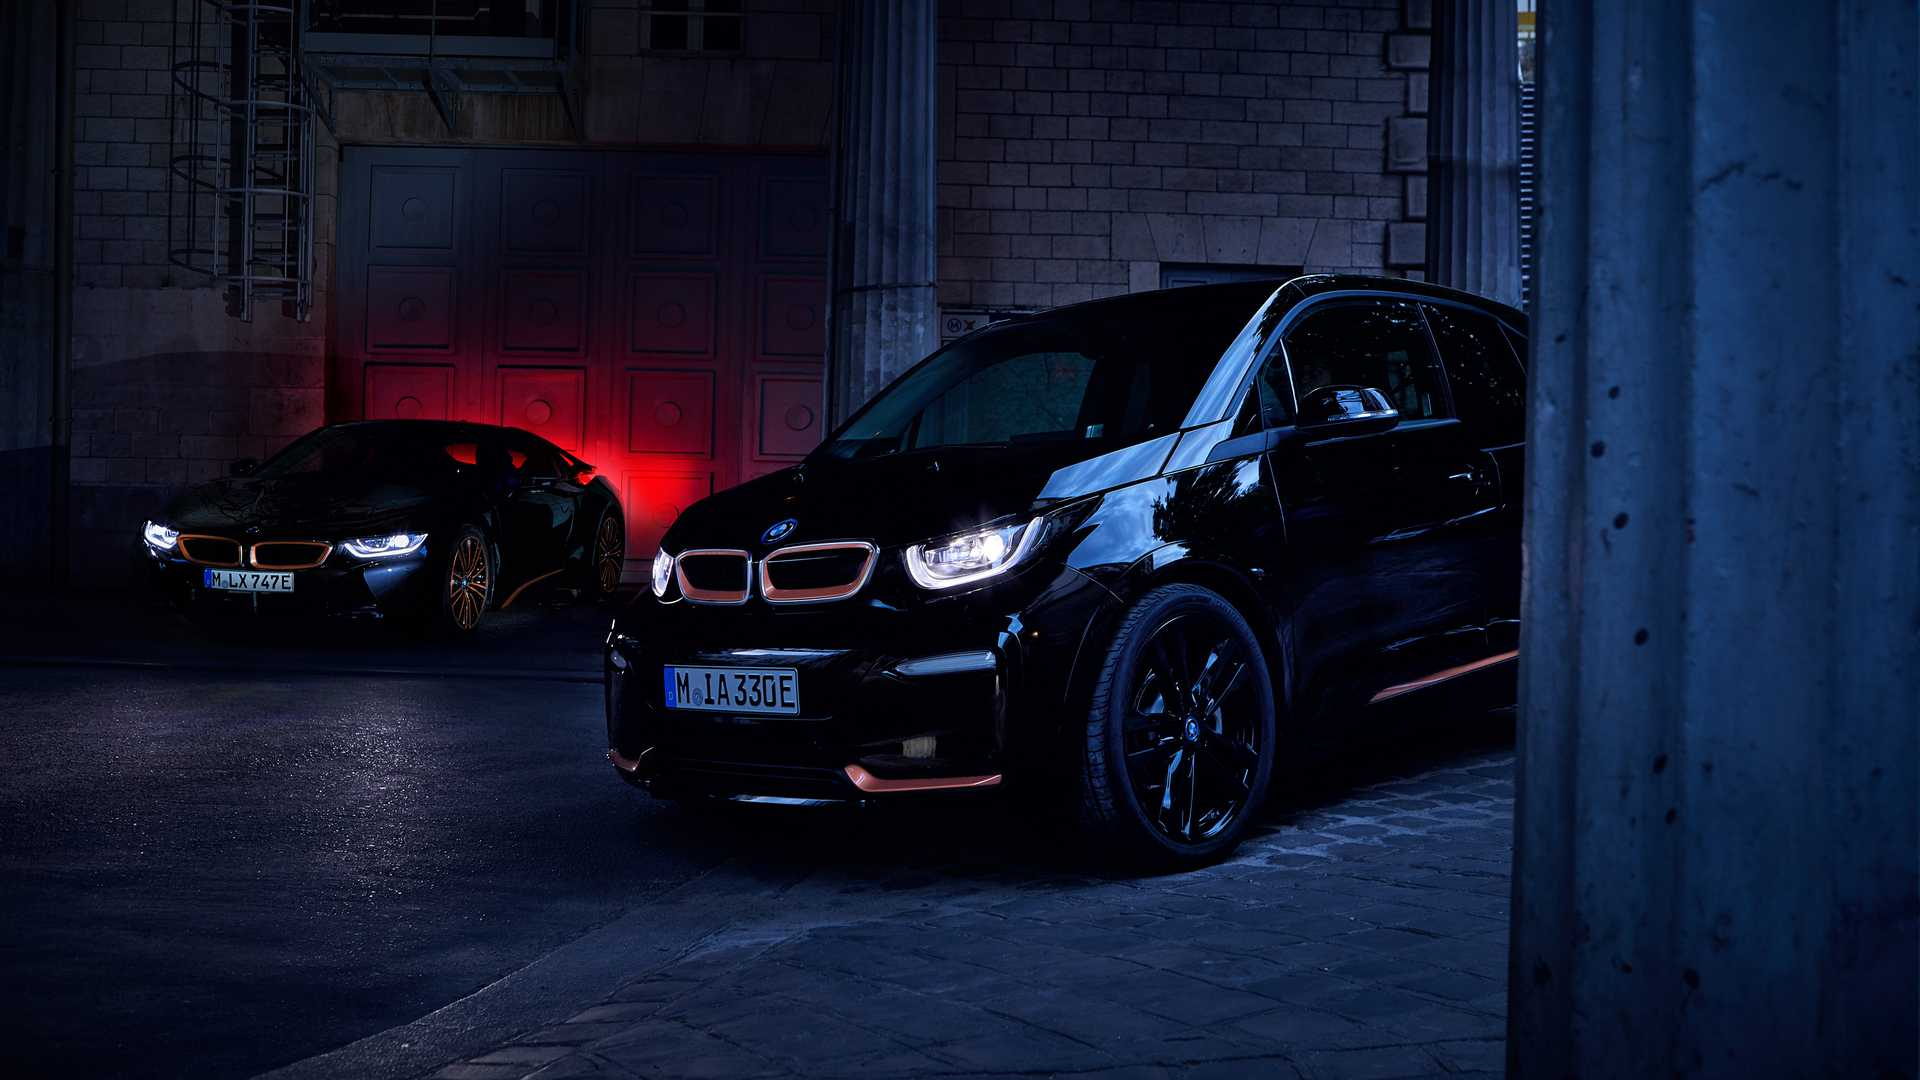 BMW i3s And i8 Get Dark Special Editions, i8 To Be Axed